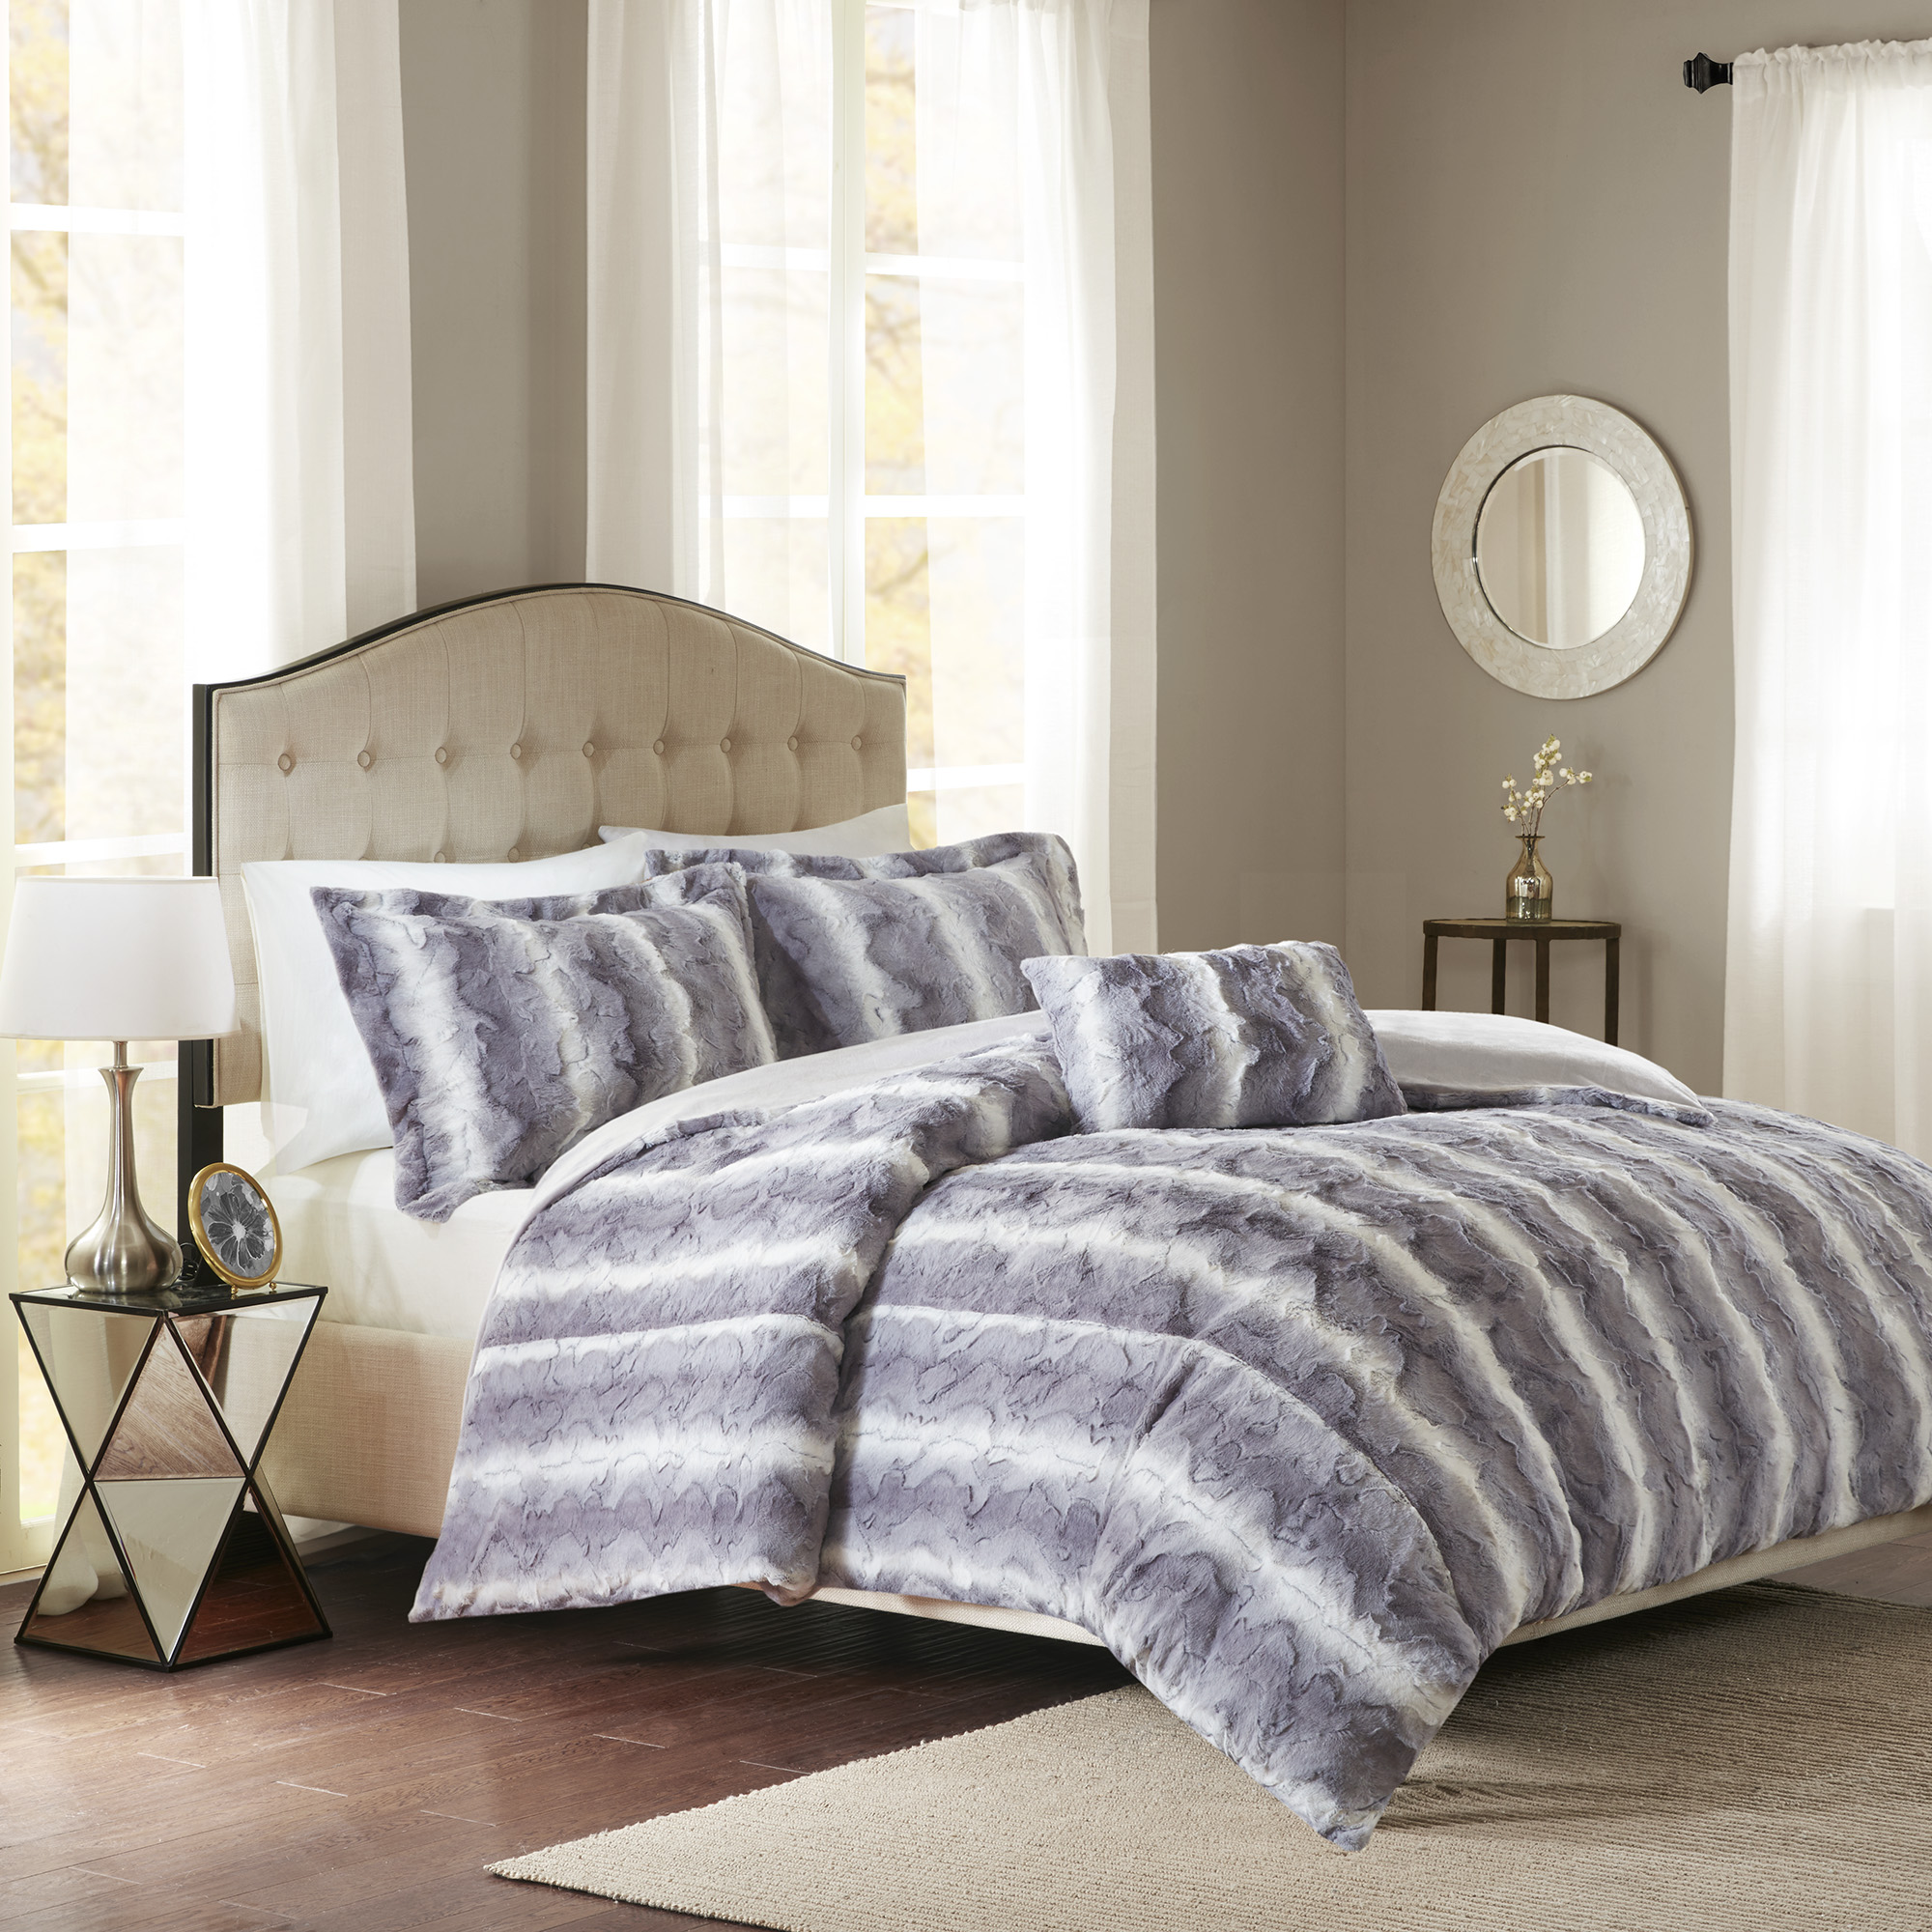 com le luxe fur over reversible bugatti home on overstock accessories luxury throws free format siberia design faux m throw covers siberie evelyne jpg bedding brielle leopard blanket bed in shipping furry orders prelonge